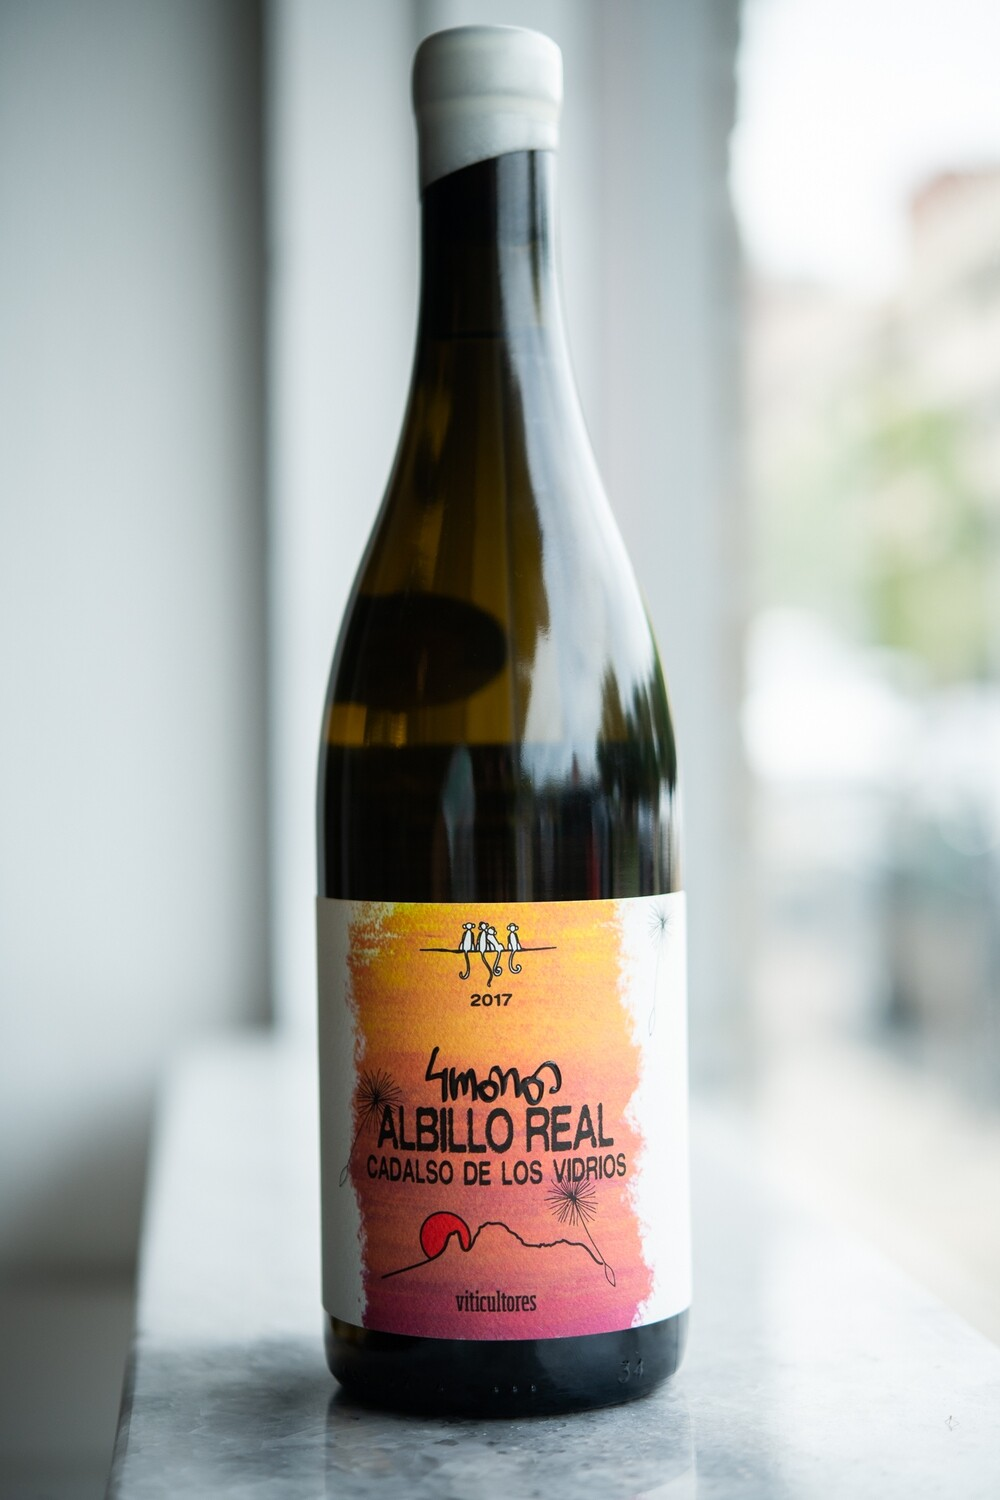 4 Monos, Vinos de Madrid Albillo Real (2017)